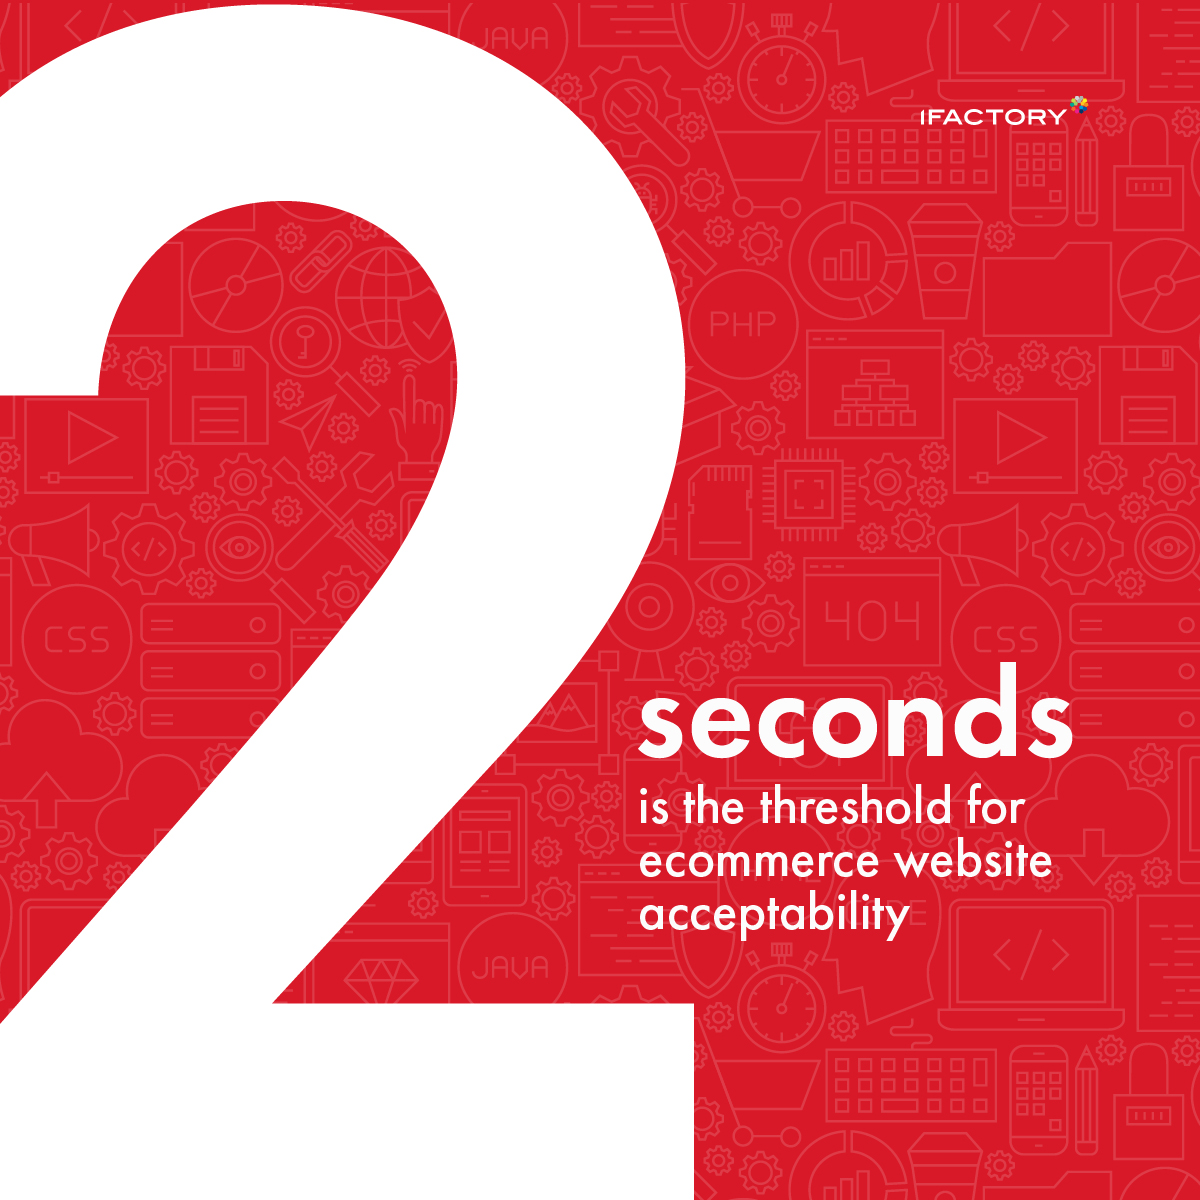 2 seconds is the threshold for ecommerce website acceptability